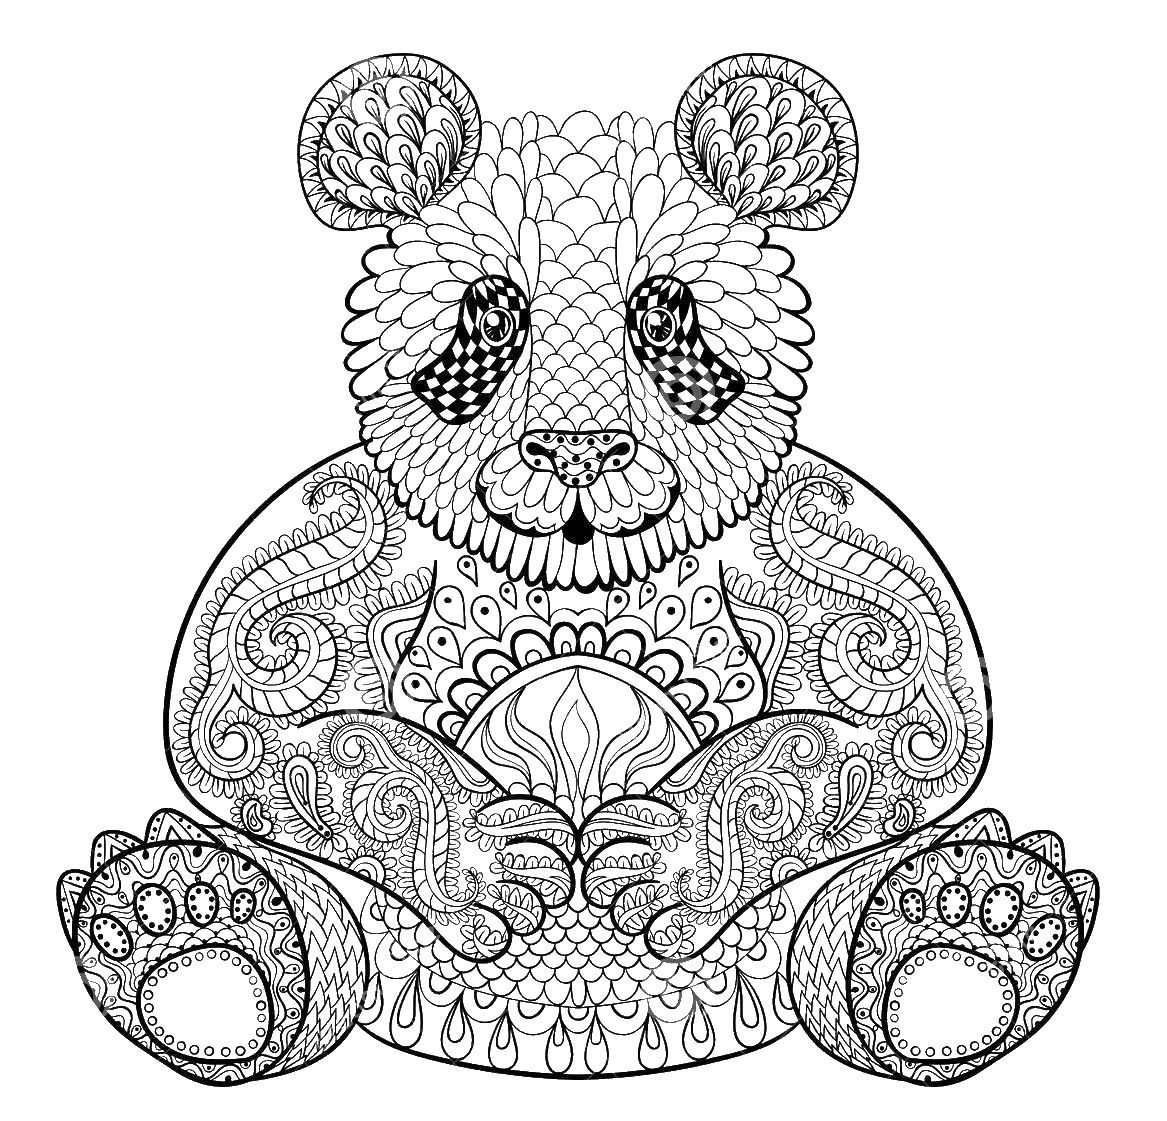 Adult Coloring Pages Panda Adult Coloring Pages and